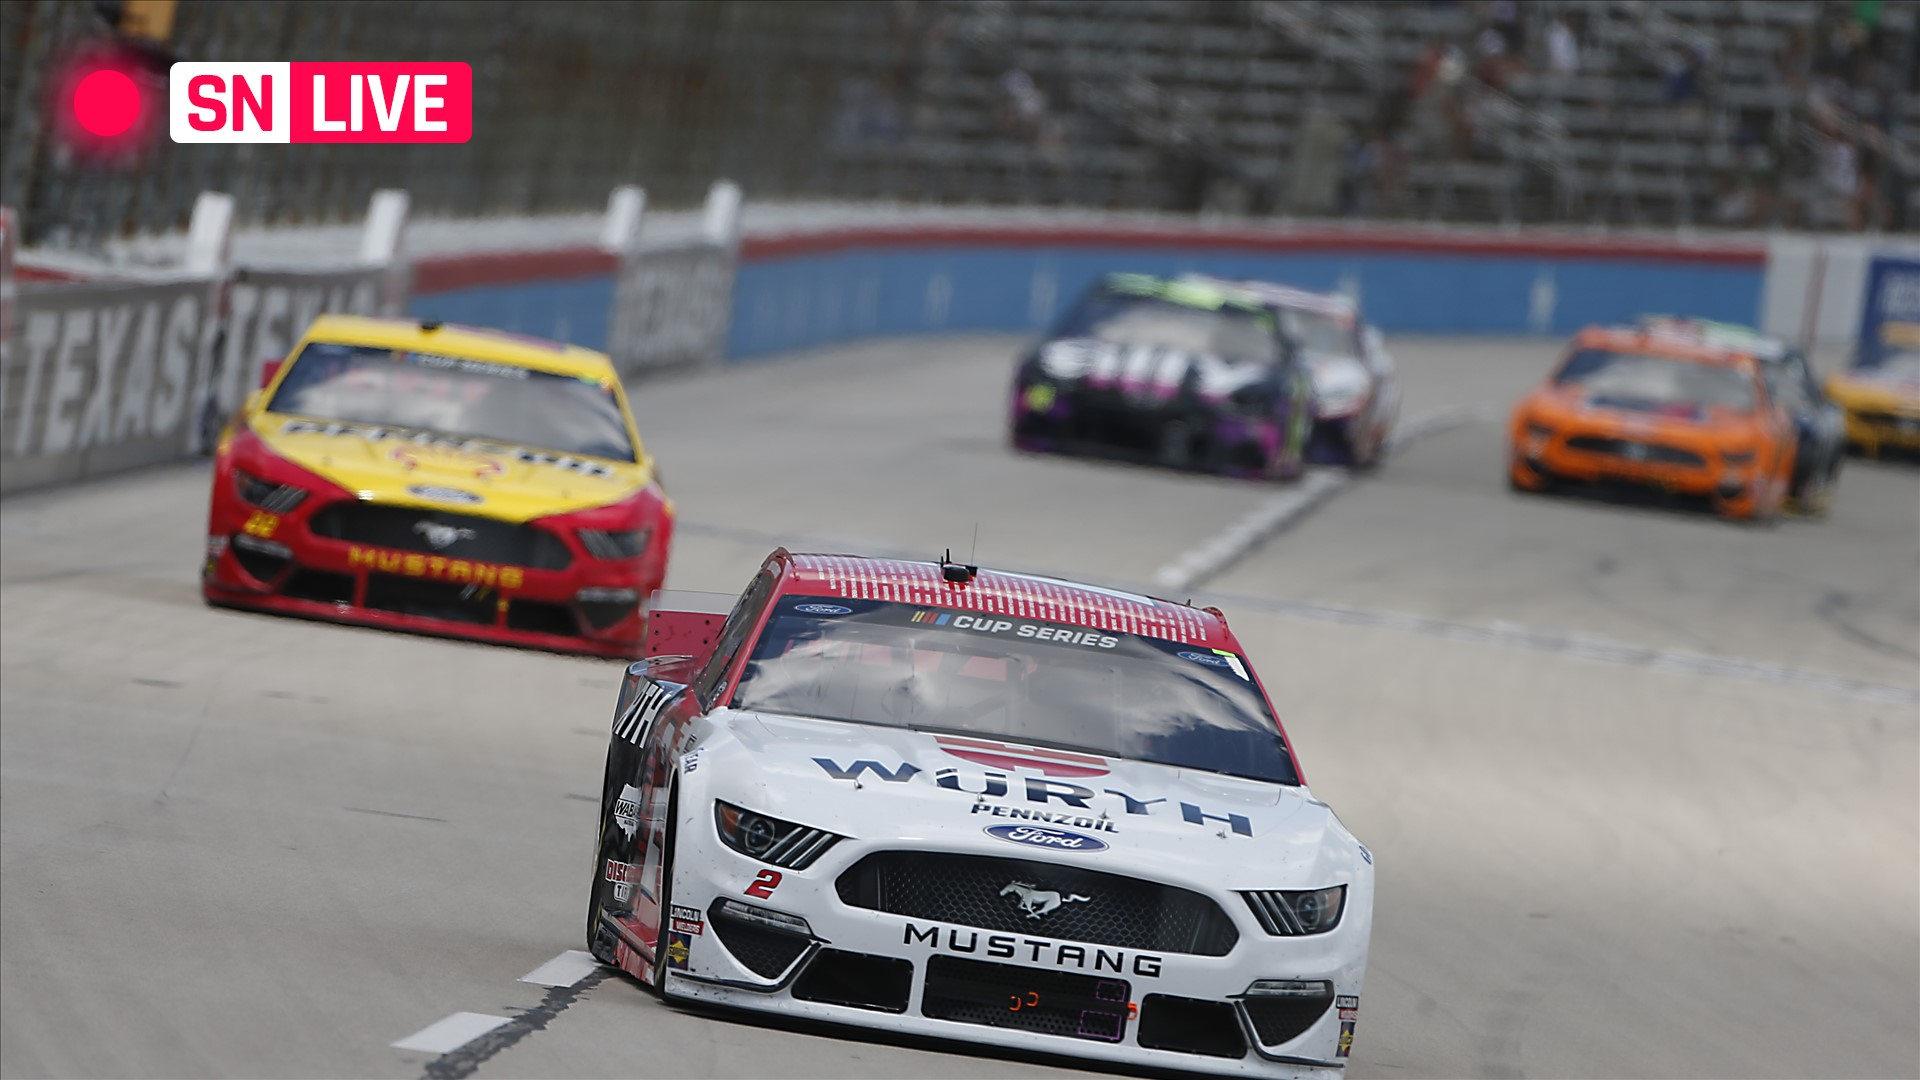 NASCAR at Texas results: Kyle Larson becomes first driver to qualify for Championship 4